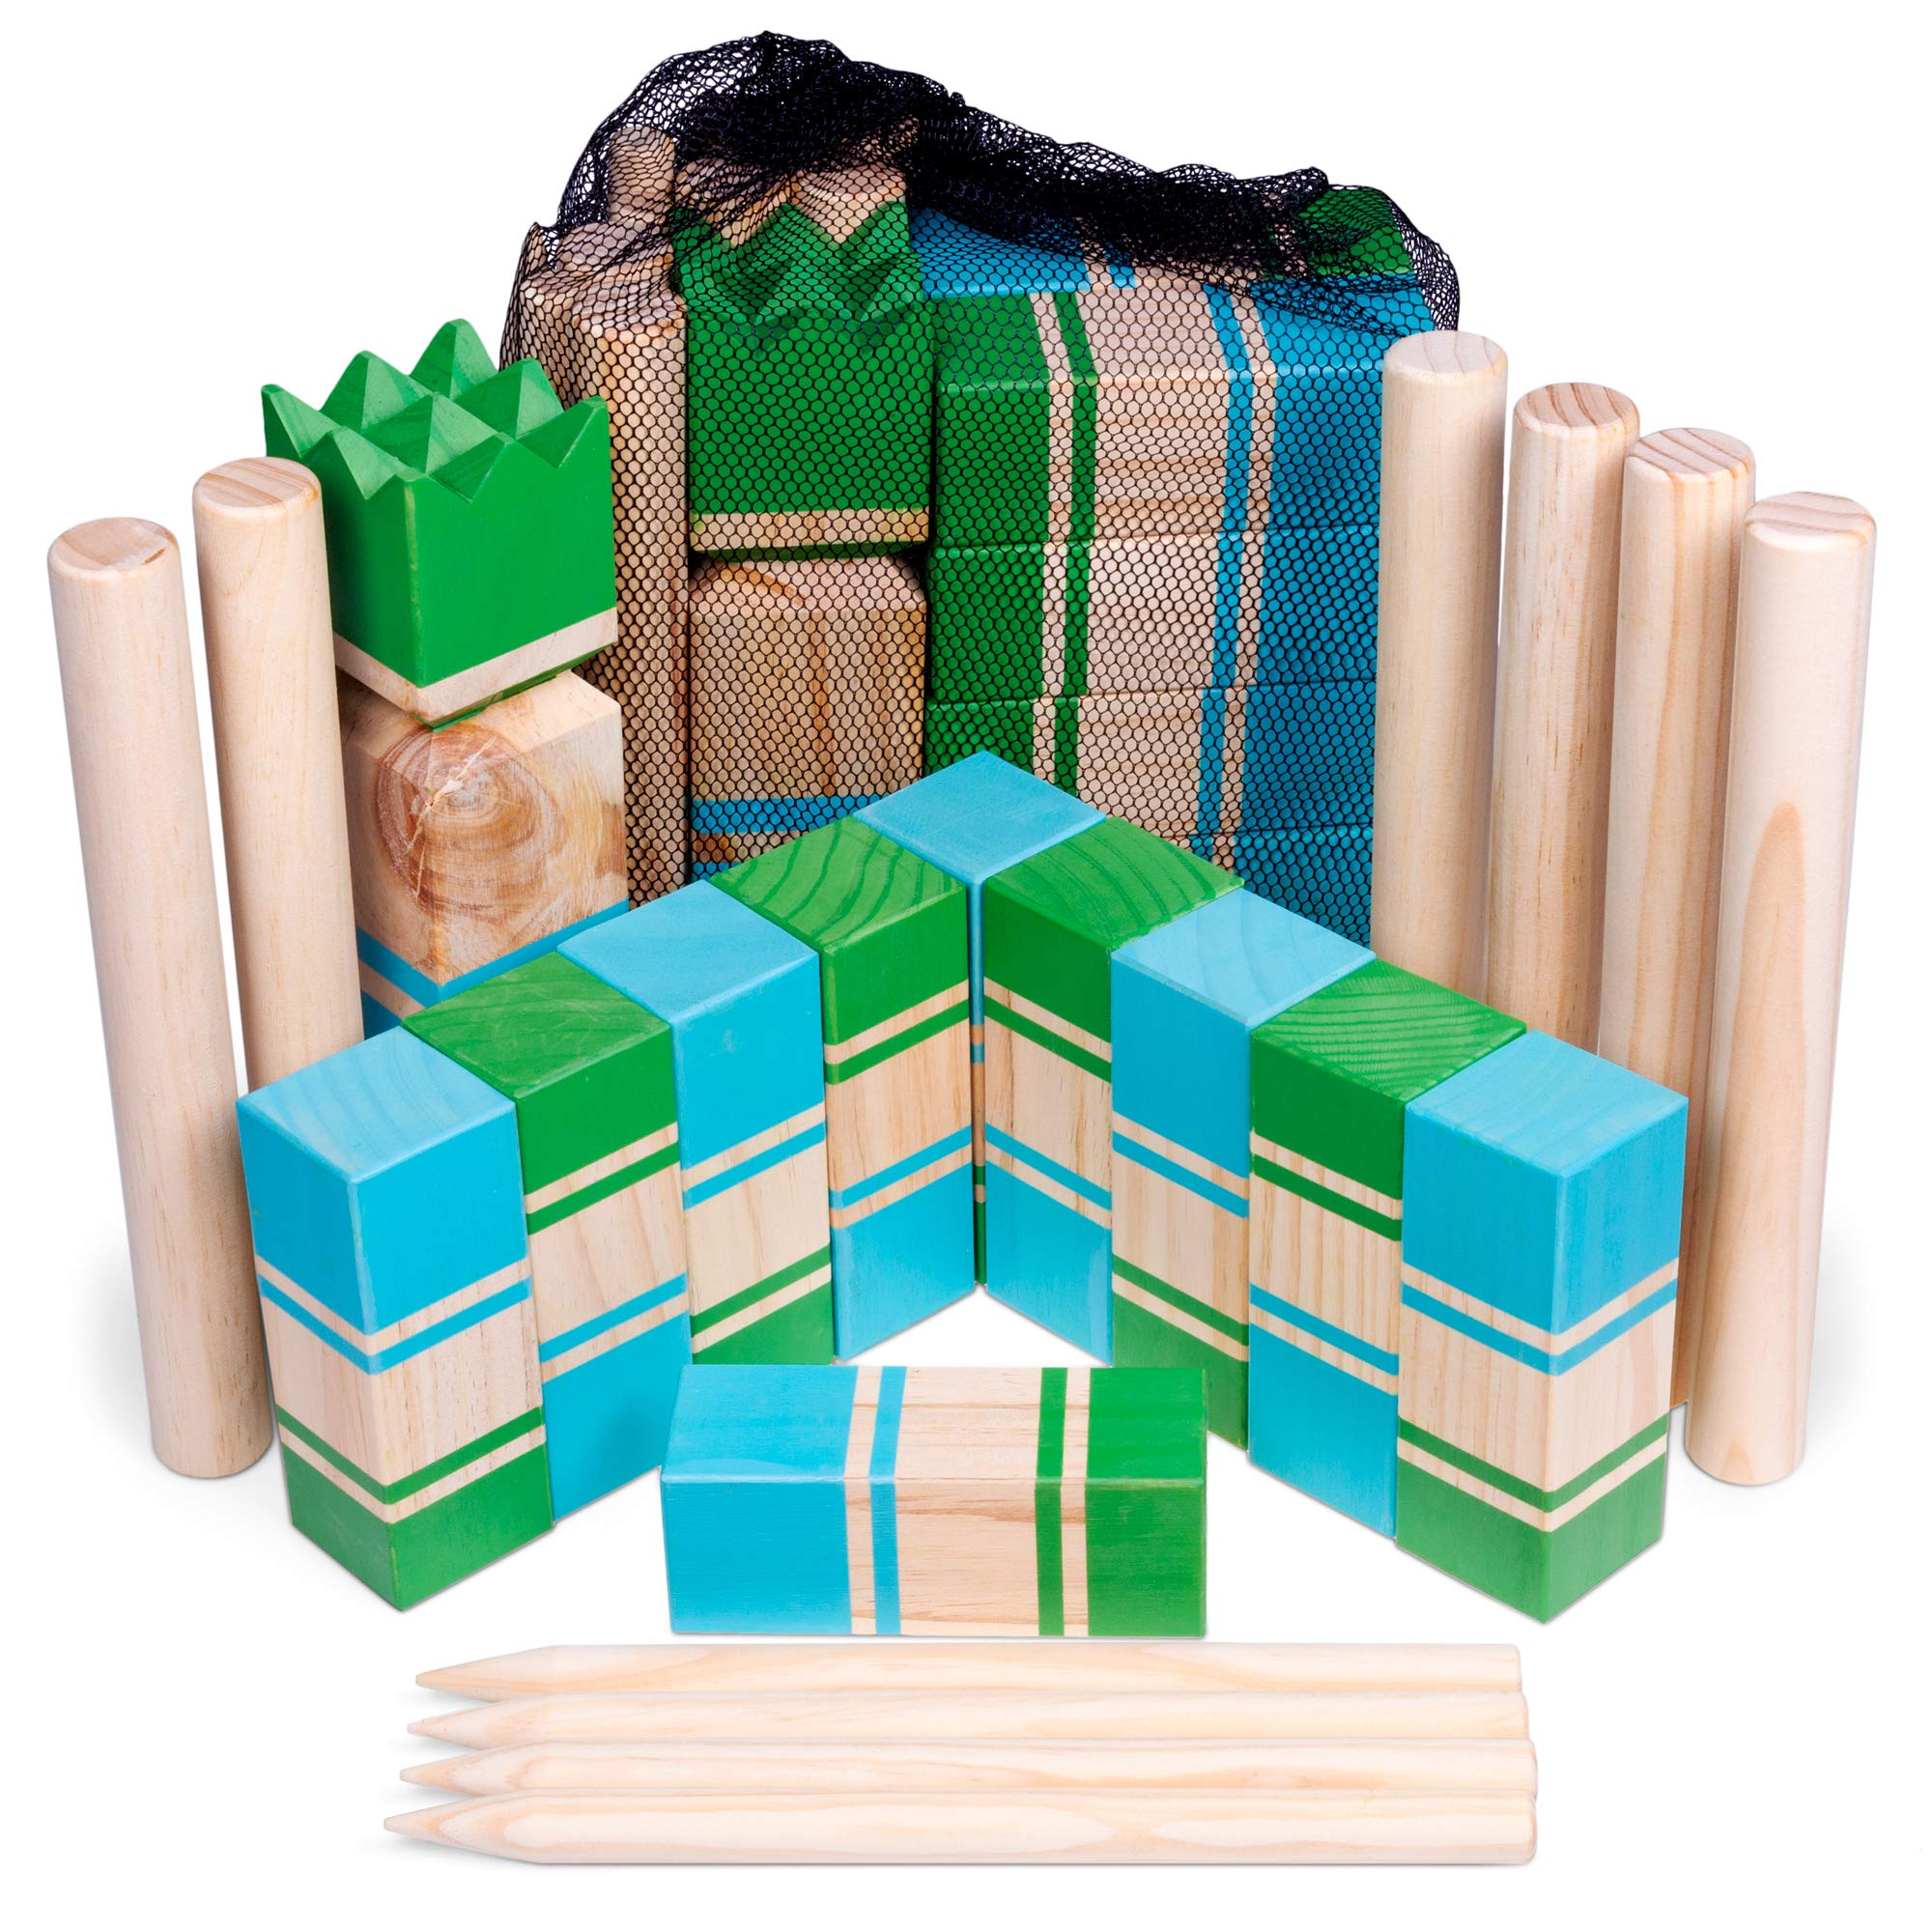 Kubb | Portable Viking Lawn Game for Adults and Kids | Unique, Traditional Family Game | Premium Wooden Tossing Game Set for Outdoor Parties, Cookouts, Yard Activities | Includes Free Mesh Carry Bag